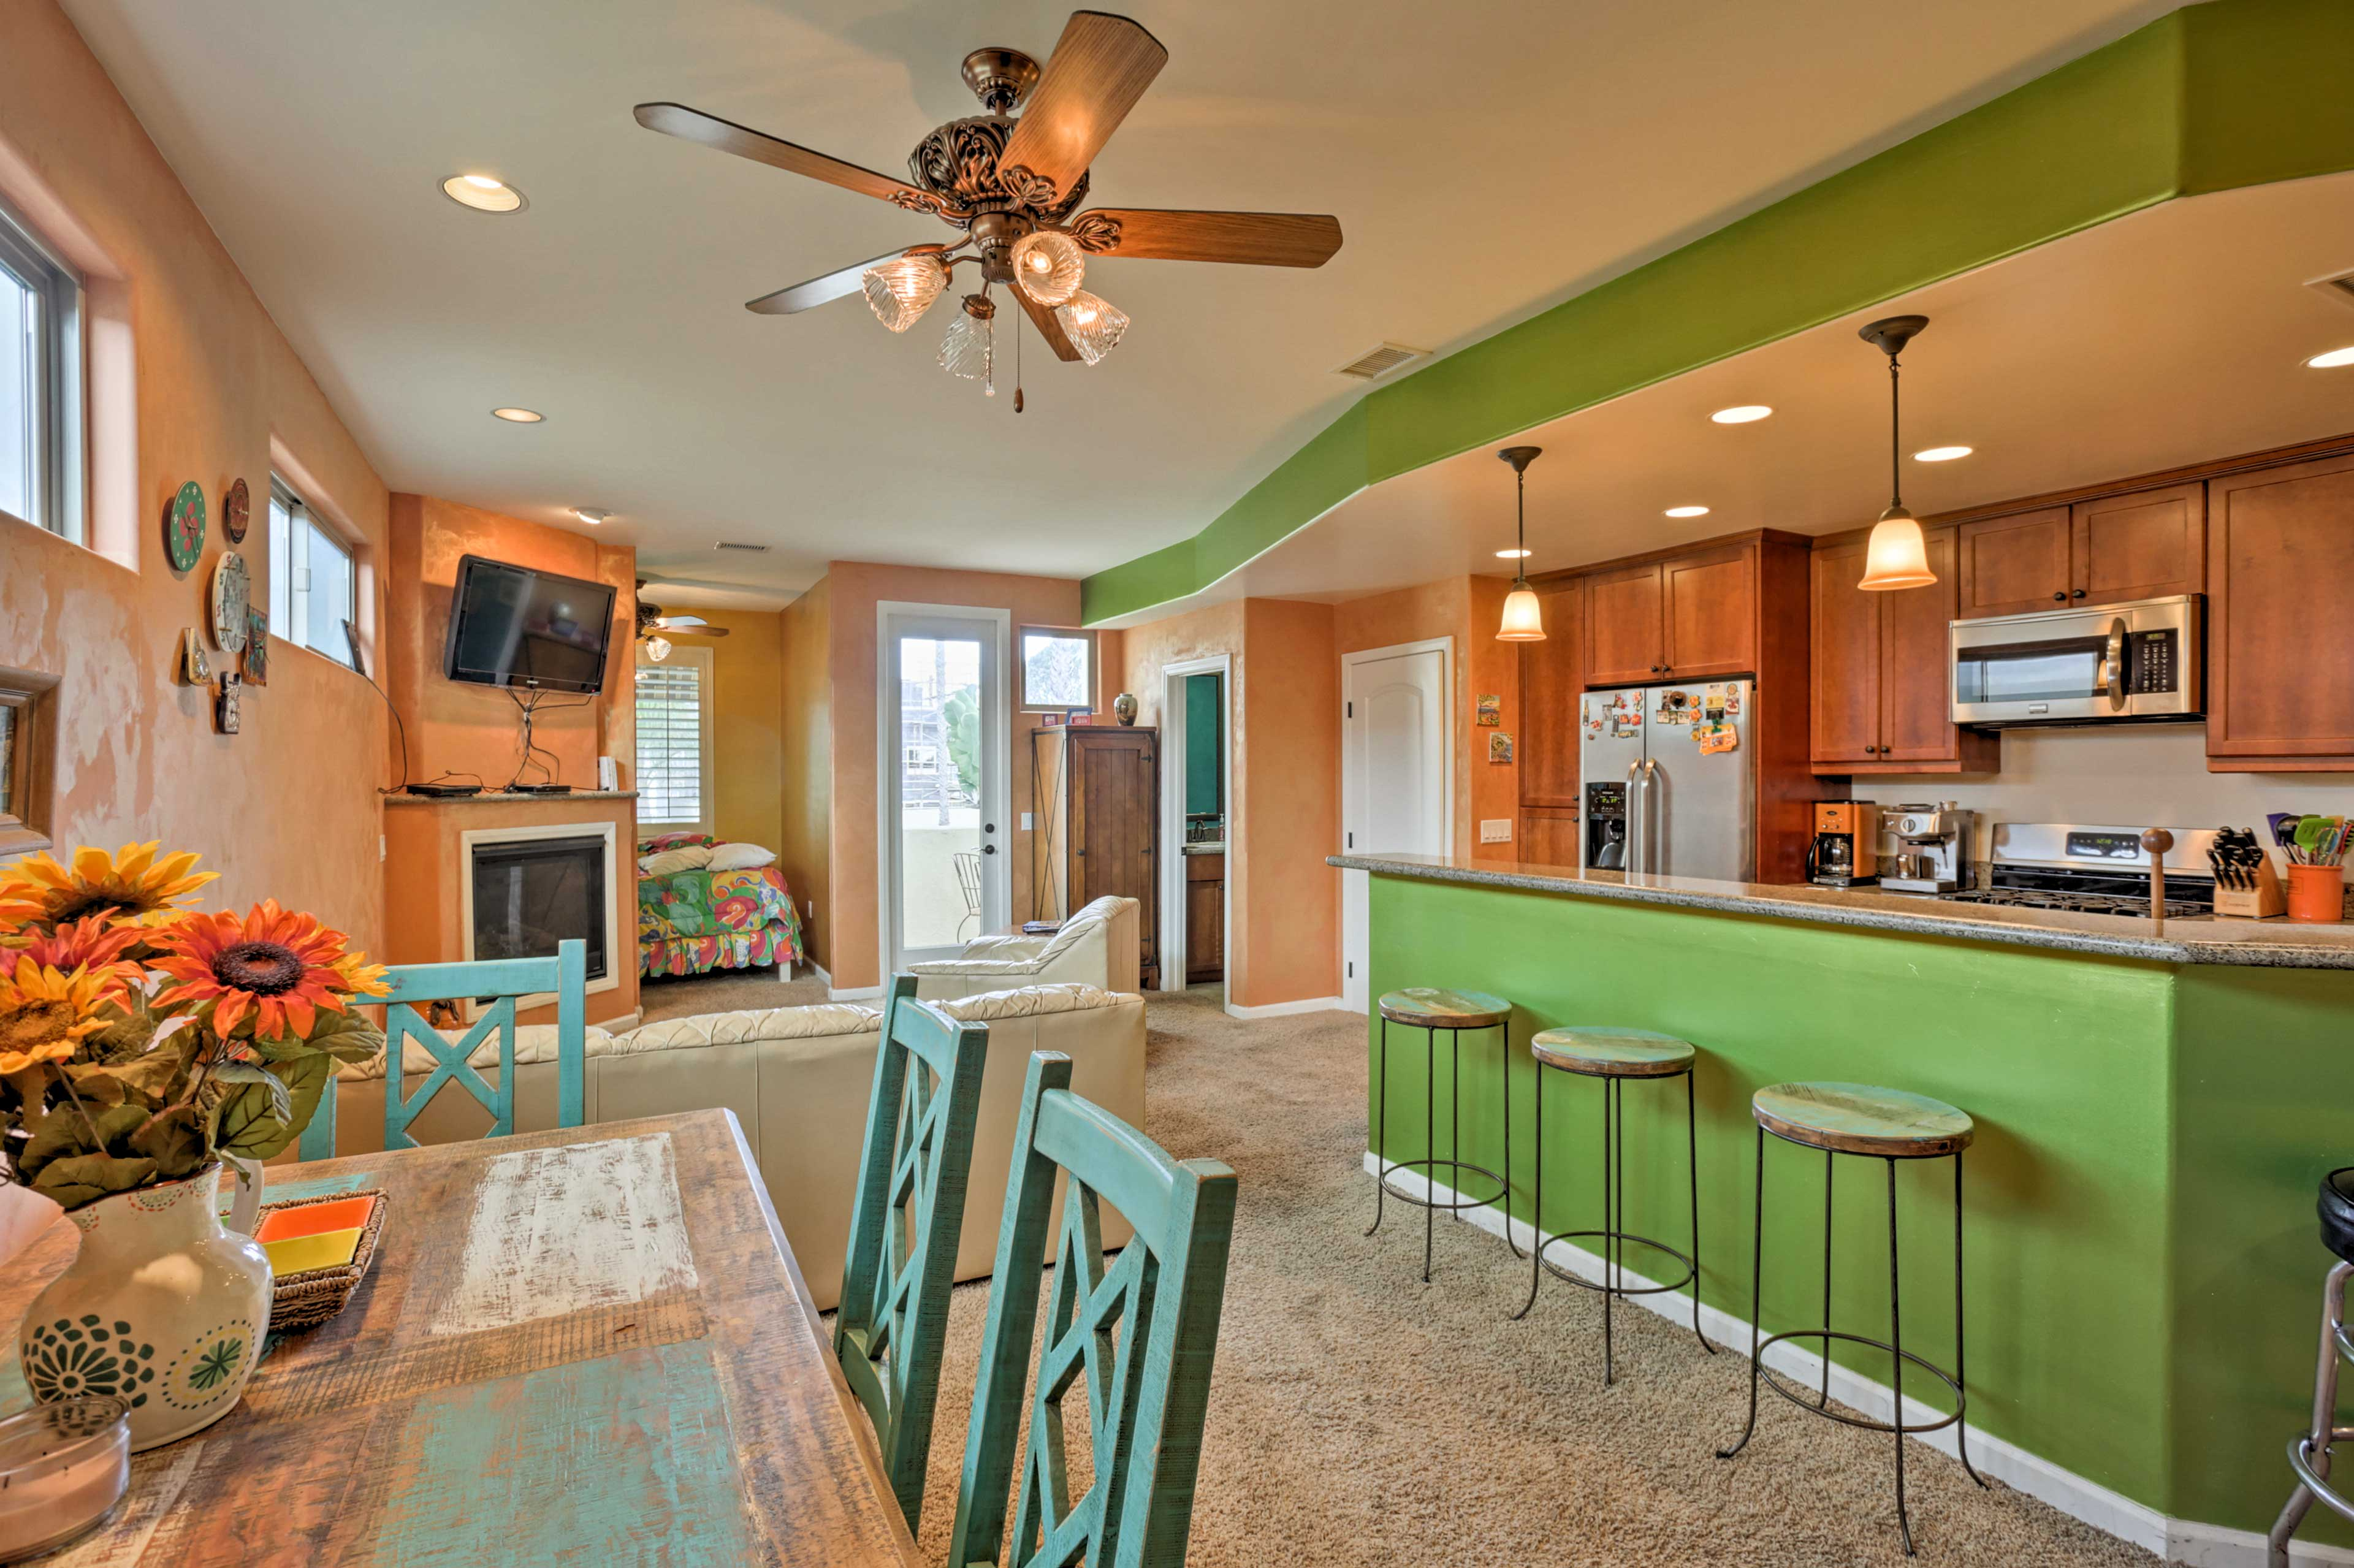 Inside, the charming home boasts 1,400 square feet of vibrant living space.